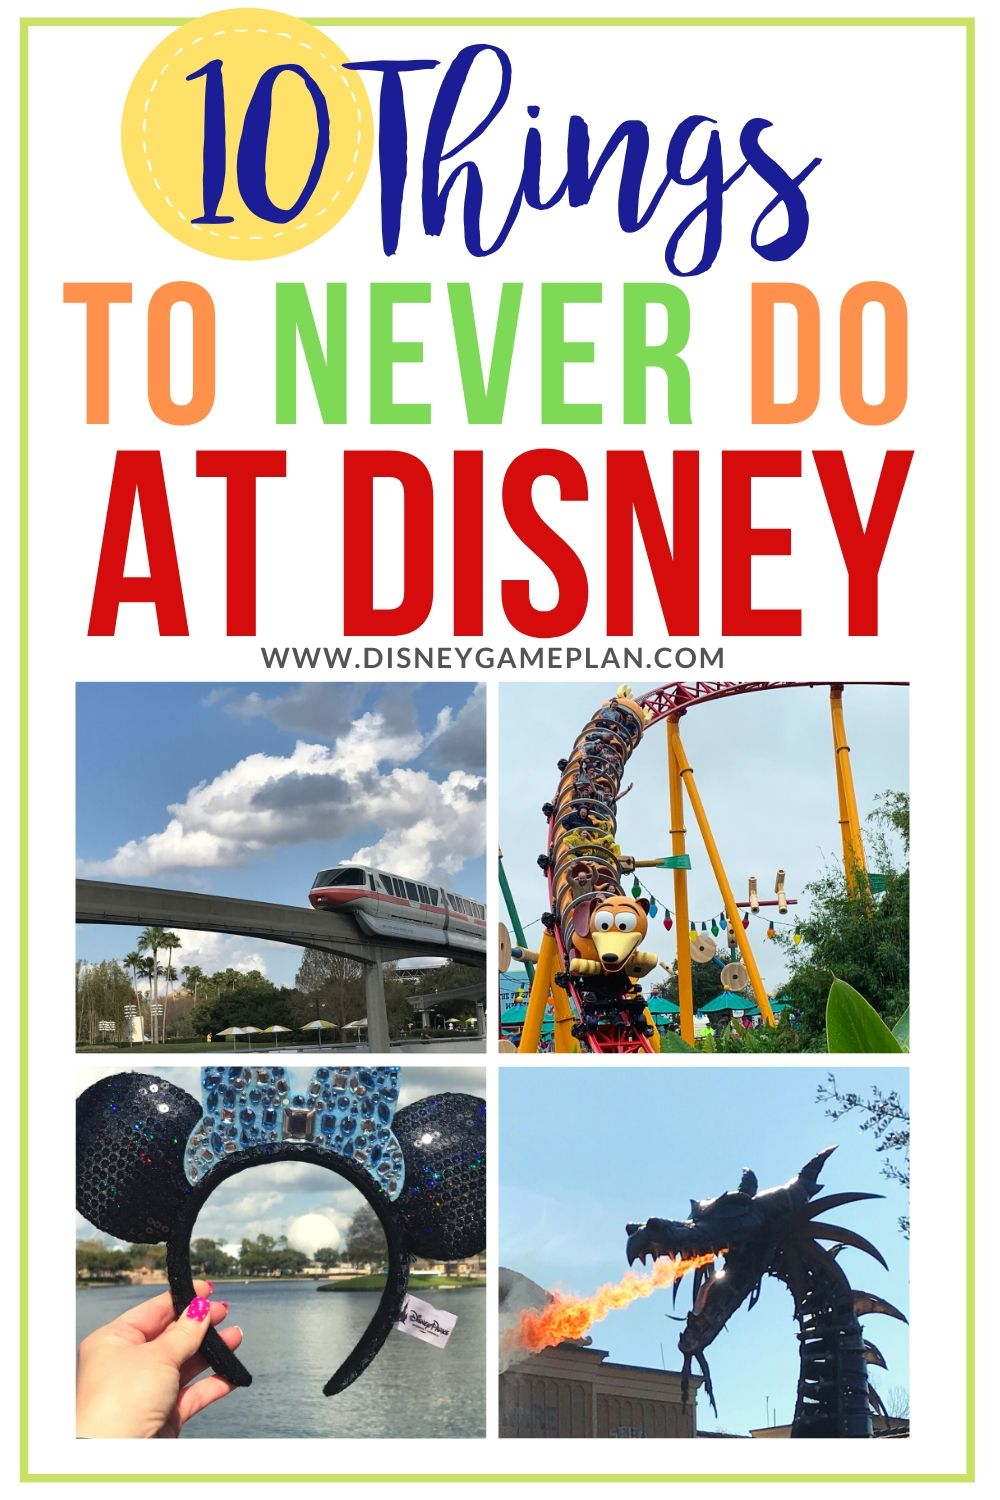 Walt Disney World is a magical place, but that doesn't mean that there aren't things you can do to ruin your own trip! Here are ten things never to do at Disney World, no matter what time of year you are visiting. These Disney planning tips will make your family vacation even more magical. #disneytips #disneyhacks #disneymustdo